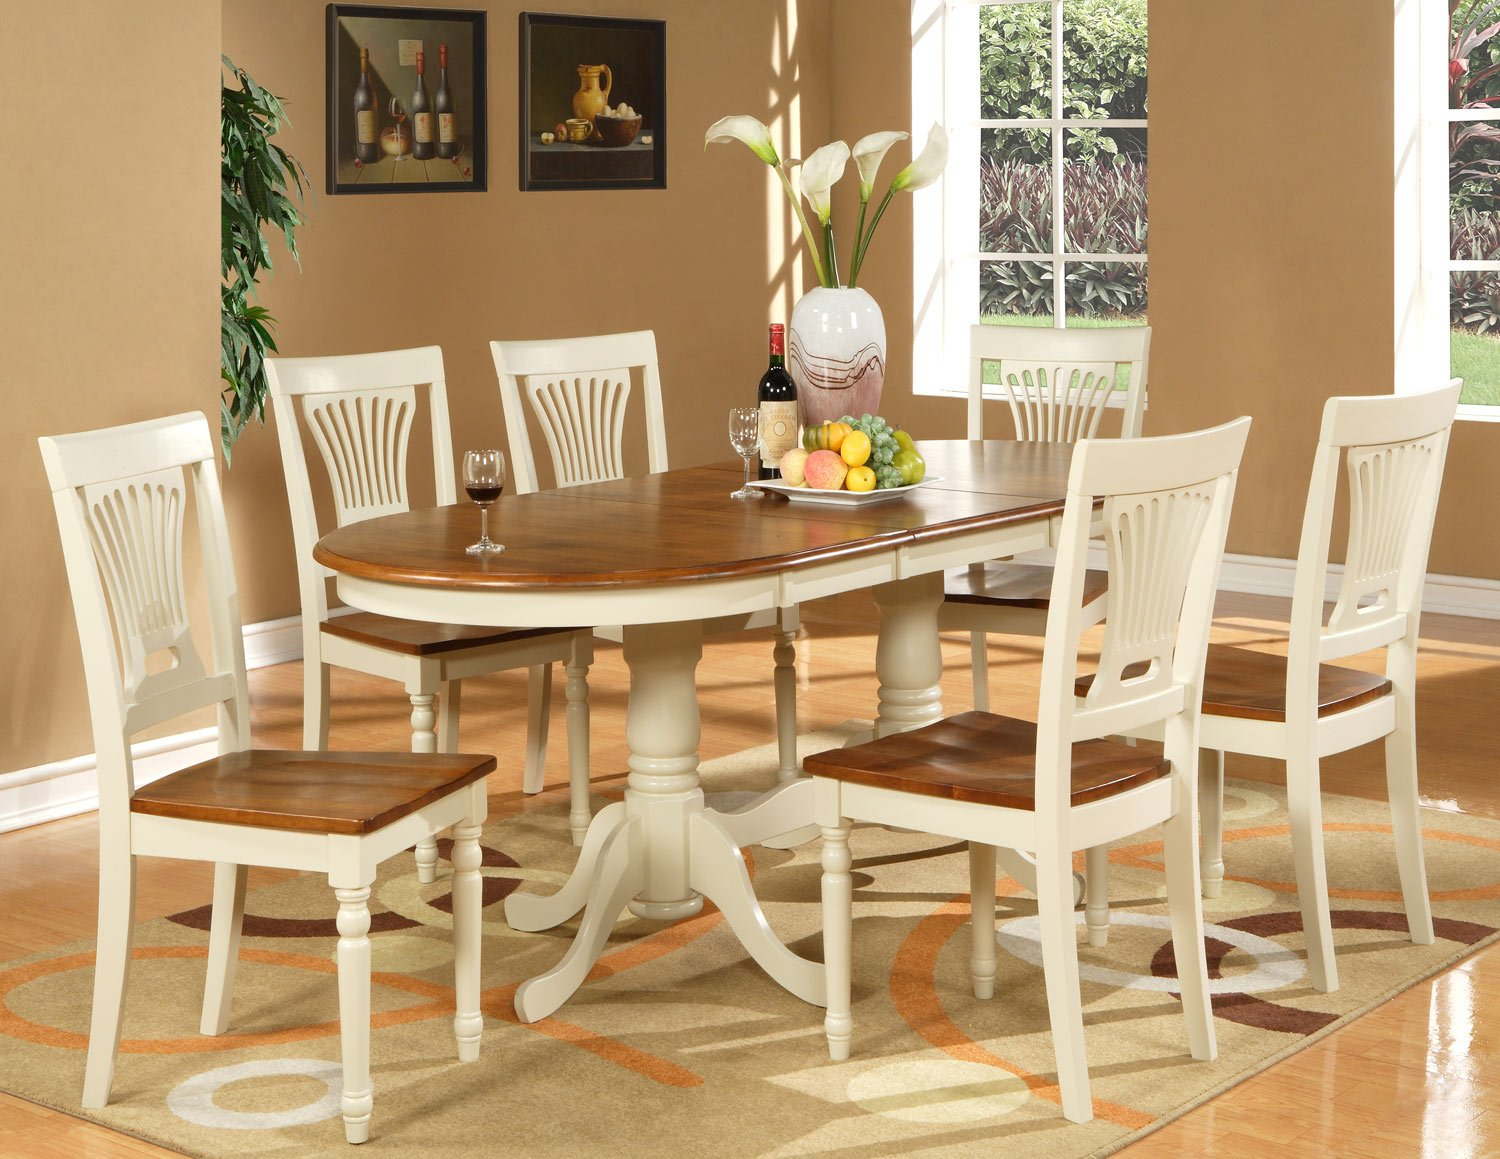 """7-PC Plainfield Dining Room Table Set + 6 Chairs - Size: 42""""x78"""" in Butter milk. SKU: PL7-WHI"""